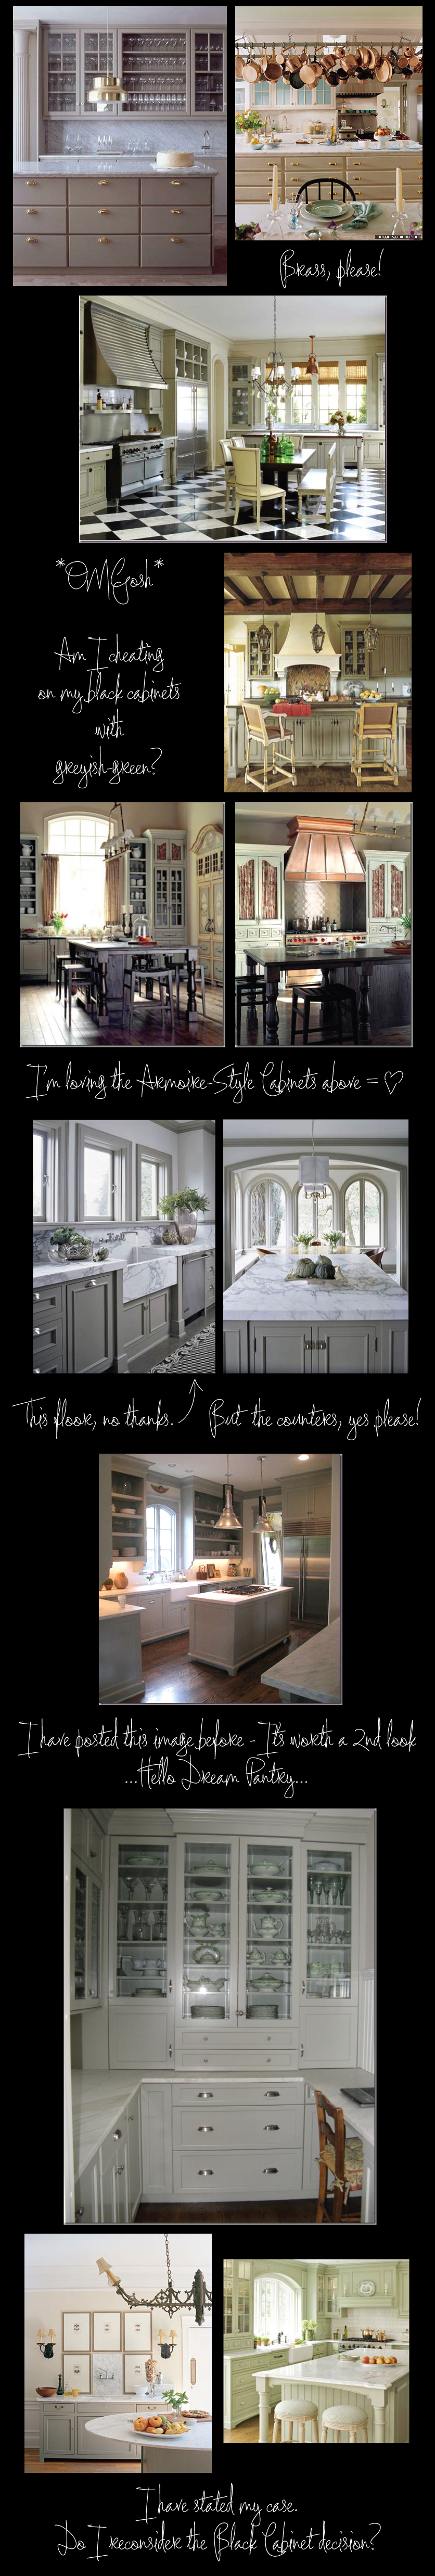 Grey-Green Kitchen Love: Inspiration